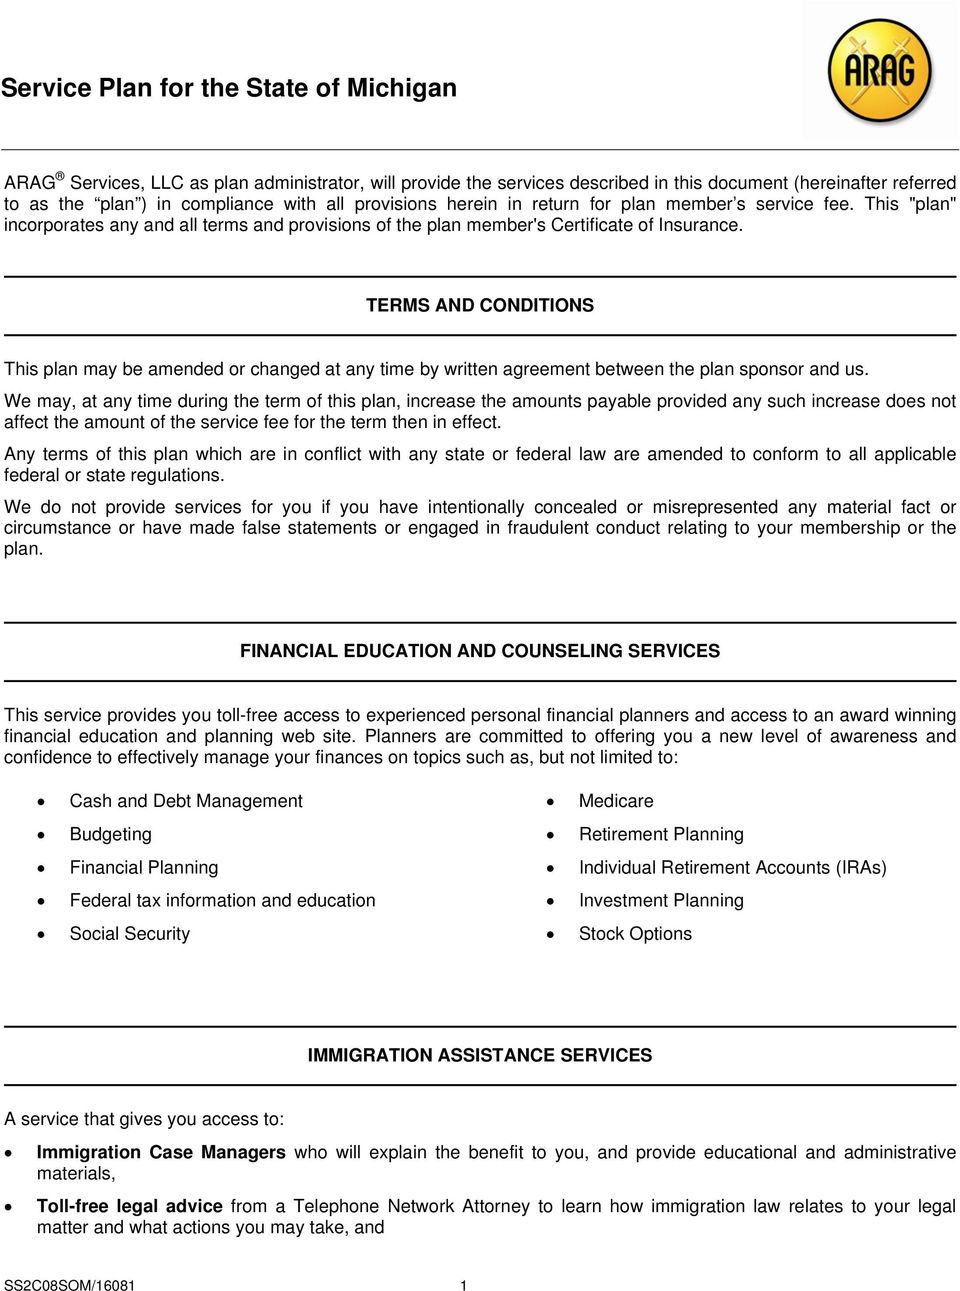 Group Legal Insurance Certificate of Insurance and Service Plan - PDF